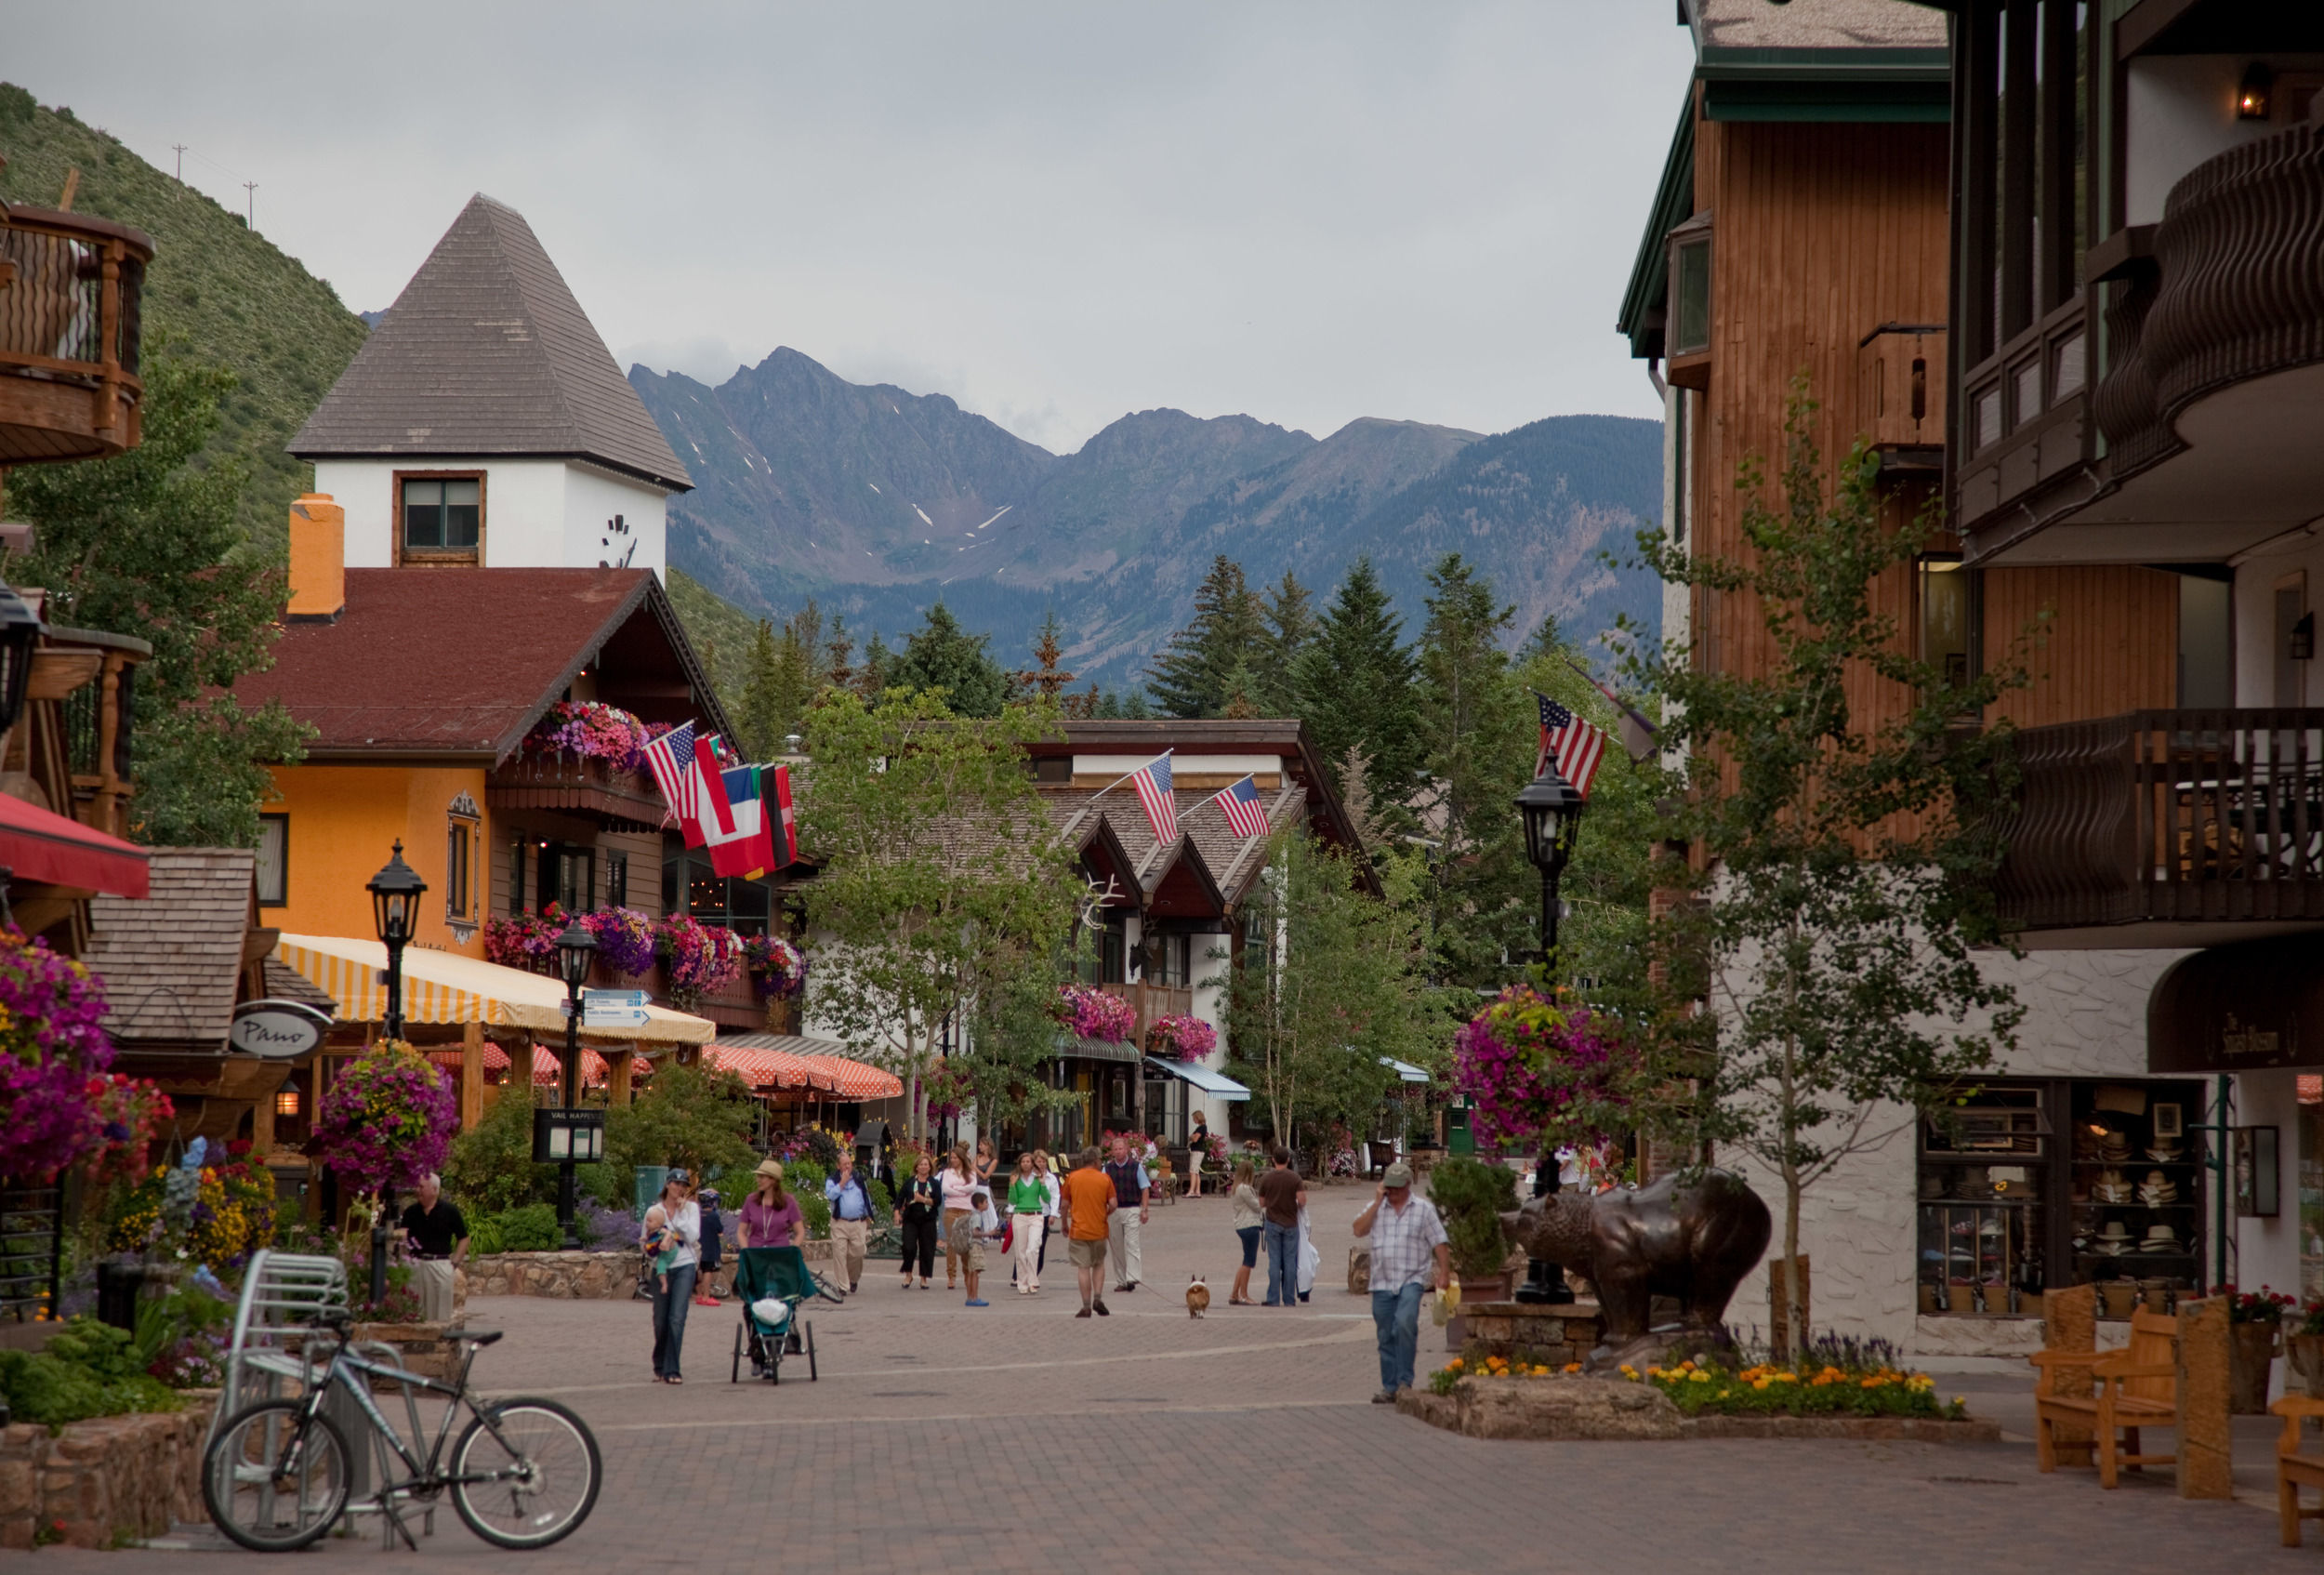 Downtown Vail, Colorado built a pleasant place for people. Every town can do this. Despitevirtually everyone who visits Vail drives their car there - they did not use it as anexcuse to not build a place for people.